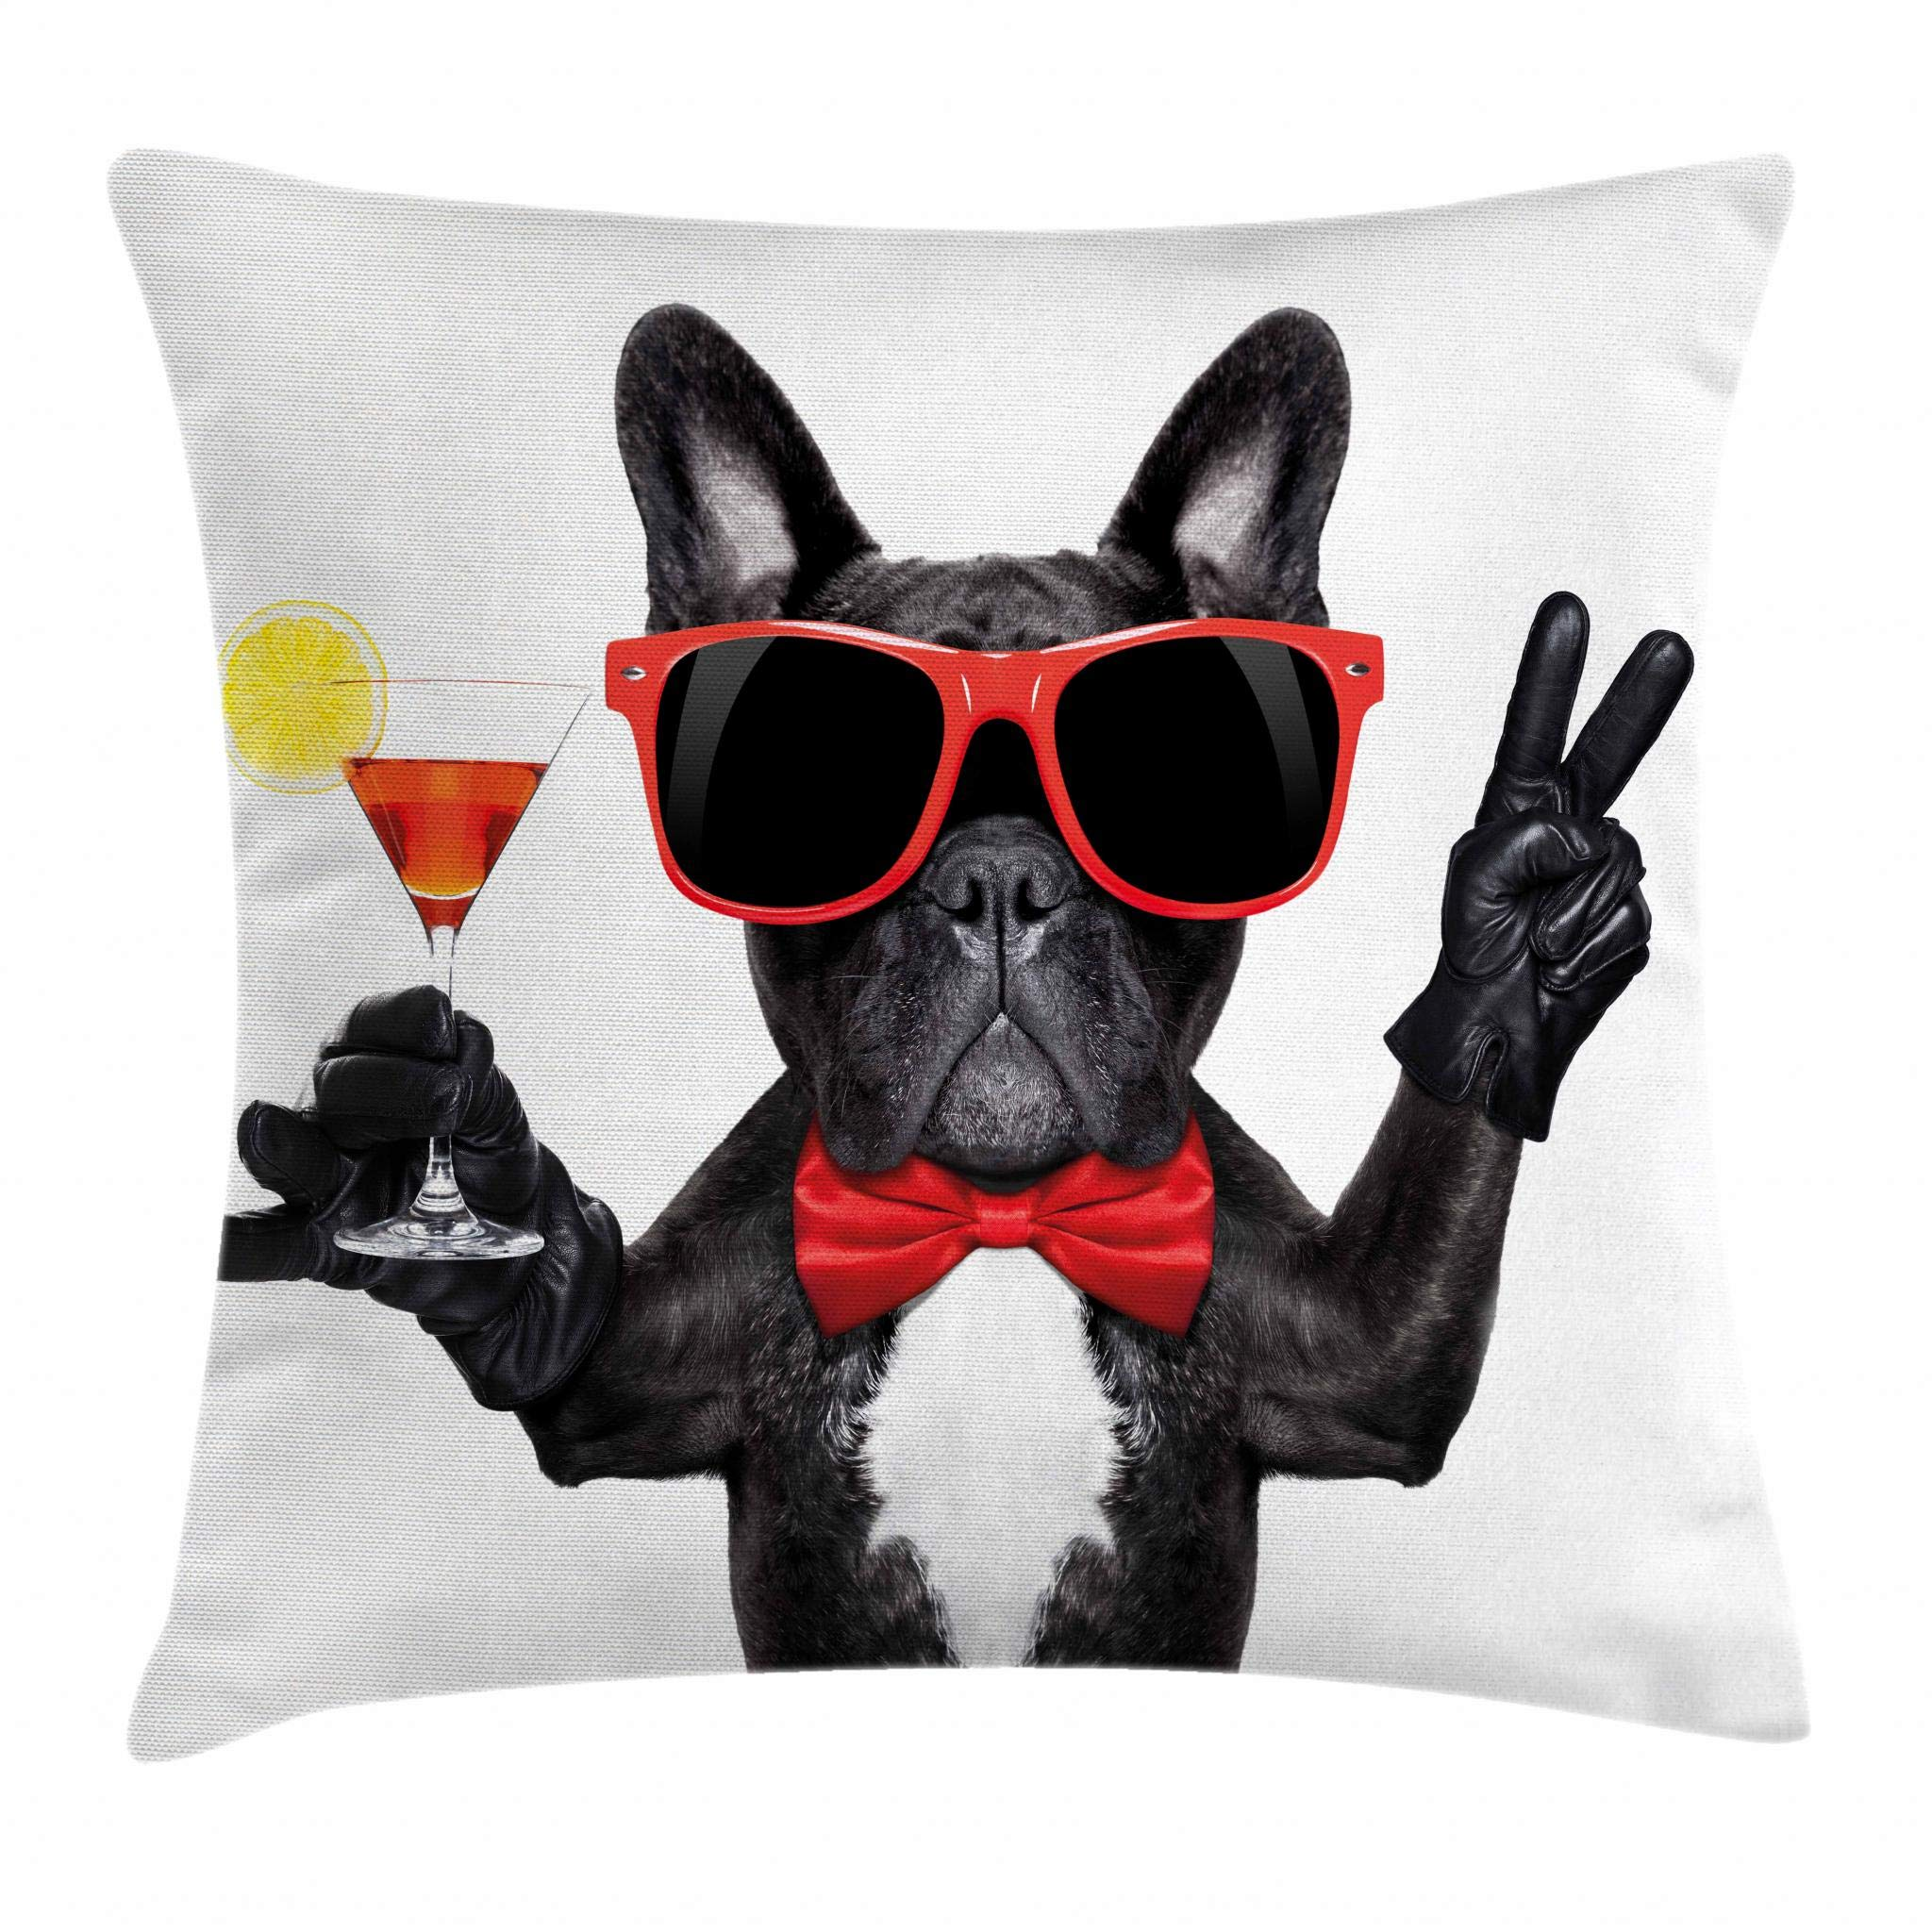 Ambesonne Funny Throw Pillow Cushion Cover, French Bulldog Holding Martini Cocktail Ready for the Party Nightlife Joy Print, Decorative Square Accent Pillow Case, 18 X 18 Inches, Black Red White